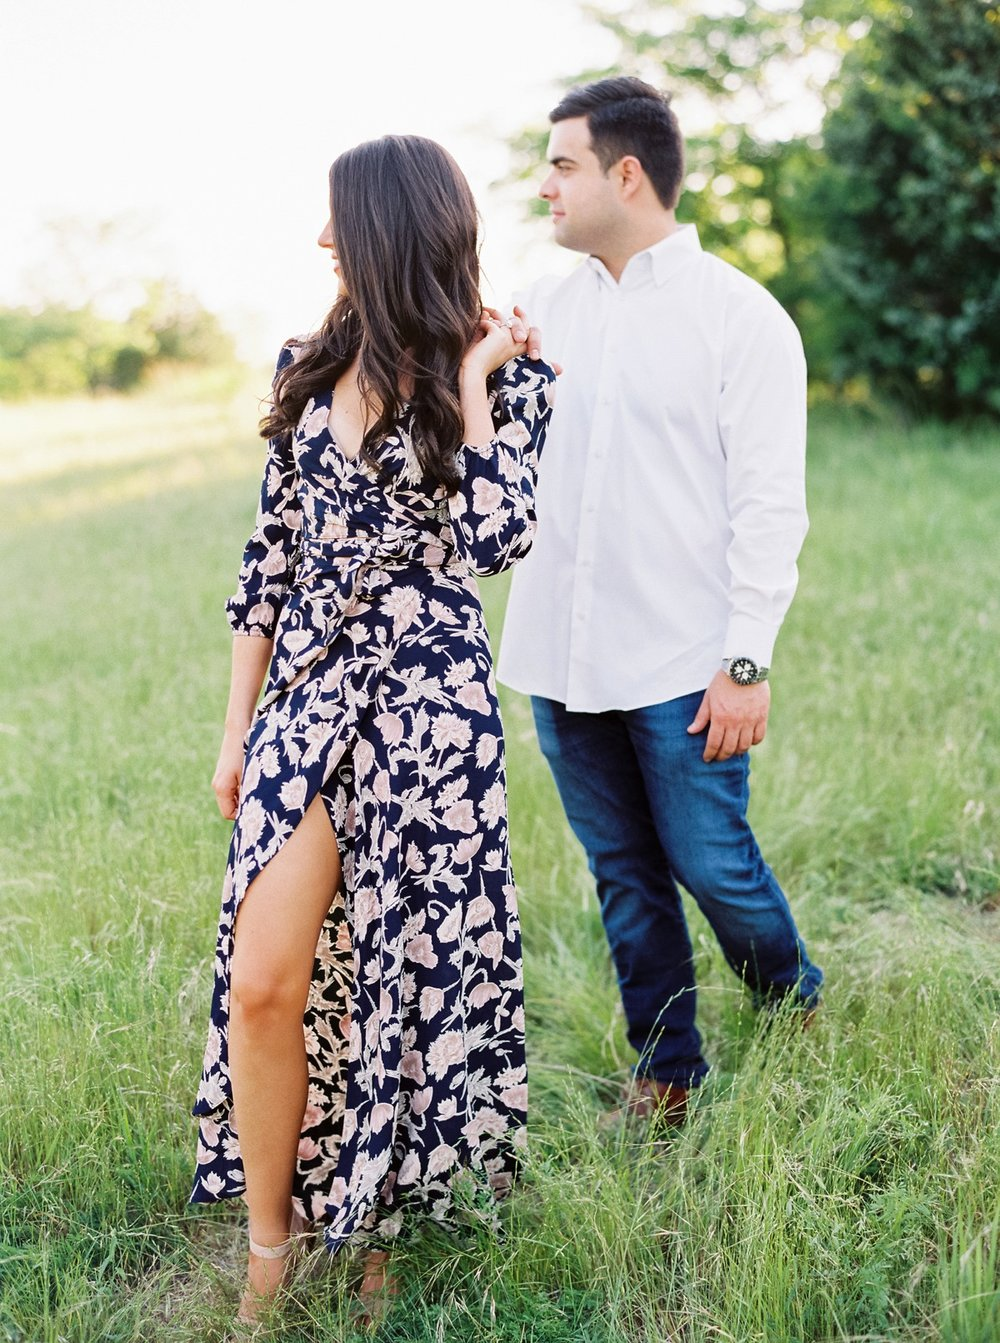 Becca Lea Photography, Fine art film wedding photographer, Contax 645, Fuji 400h, Portra 800, Photovision Prints, Film Photographer, Fine Art Wedding Photographer, Dallas Engagement Photographer, Dallas Wedding Photographer, ASOS layered skirt, Luxury Wedding Photographer